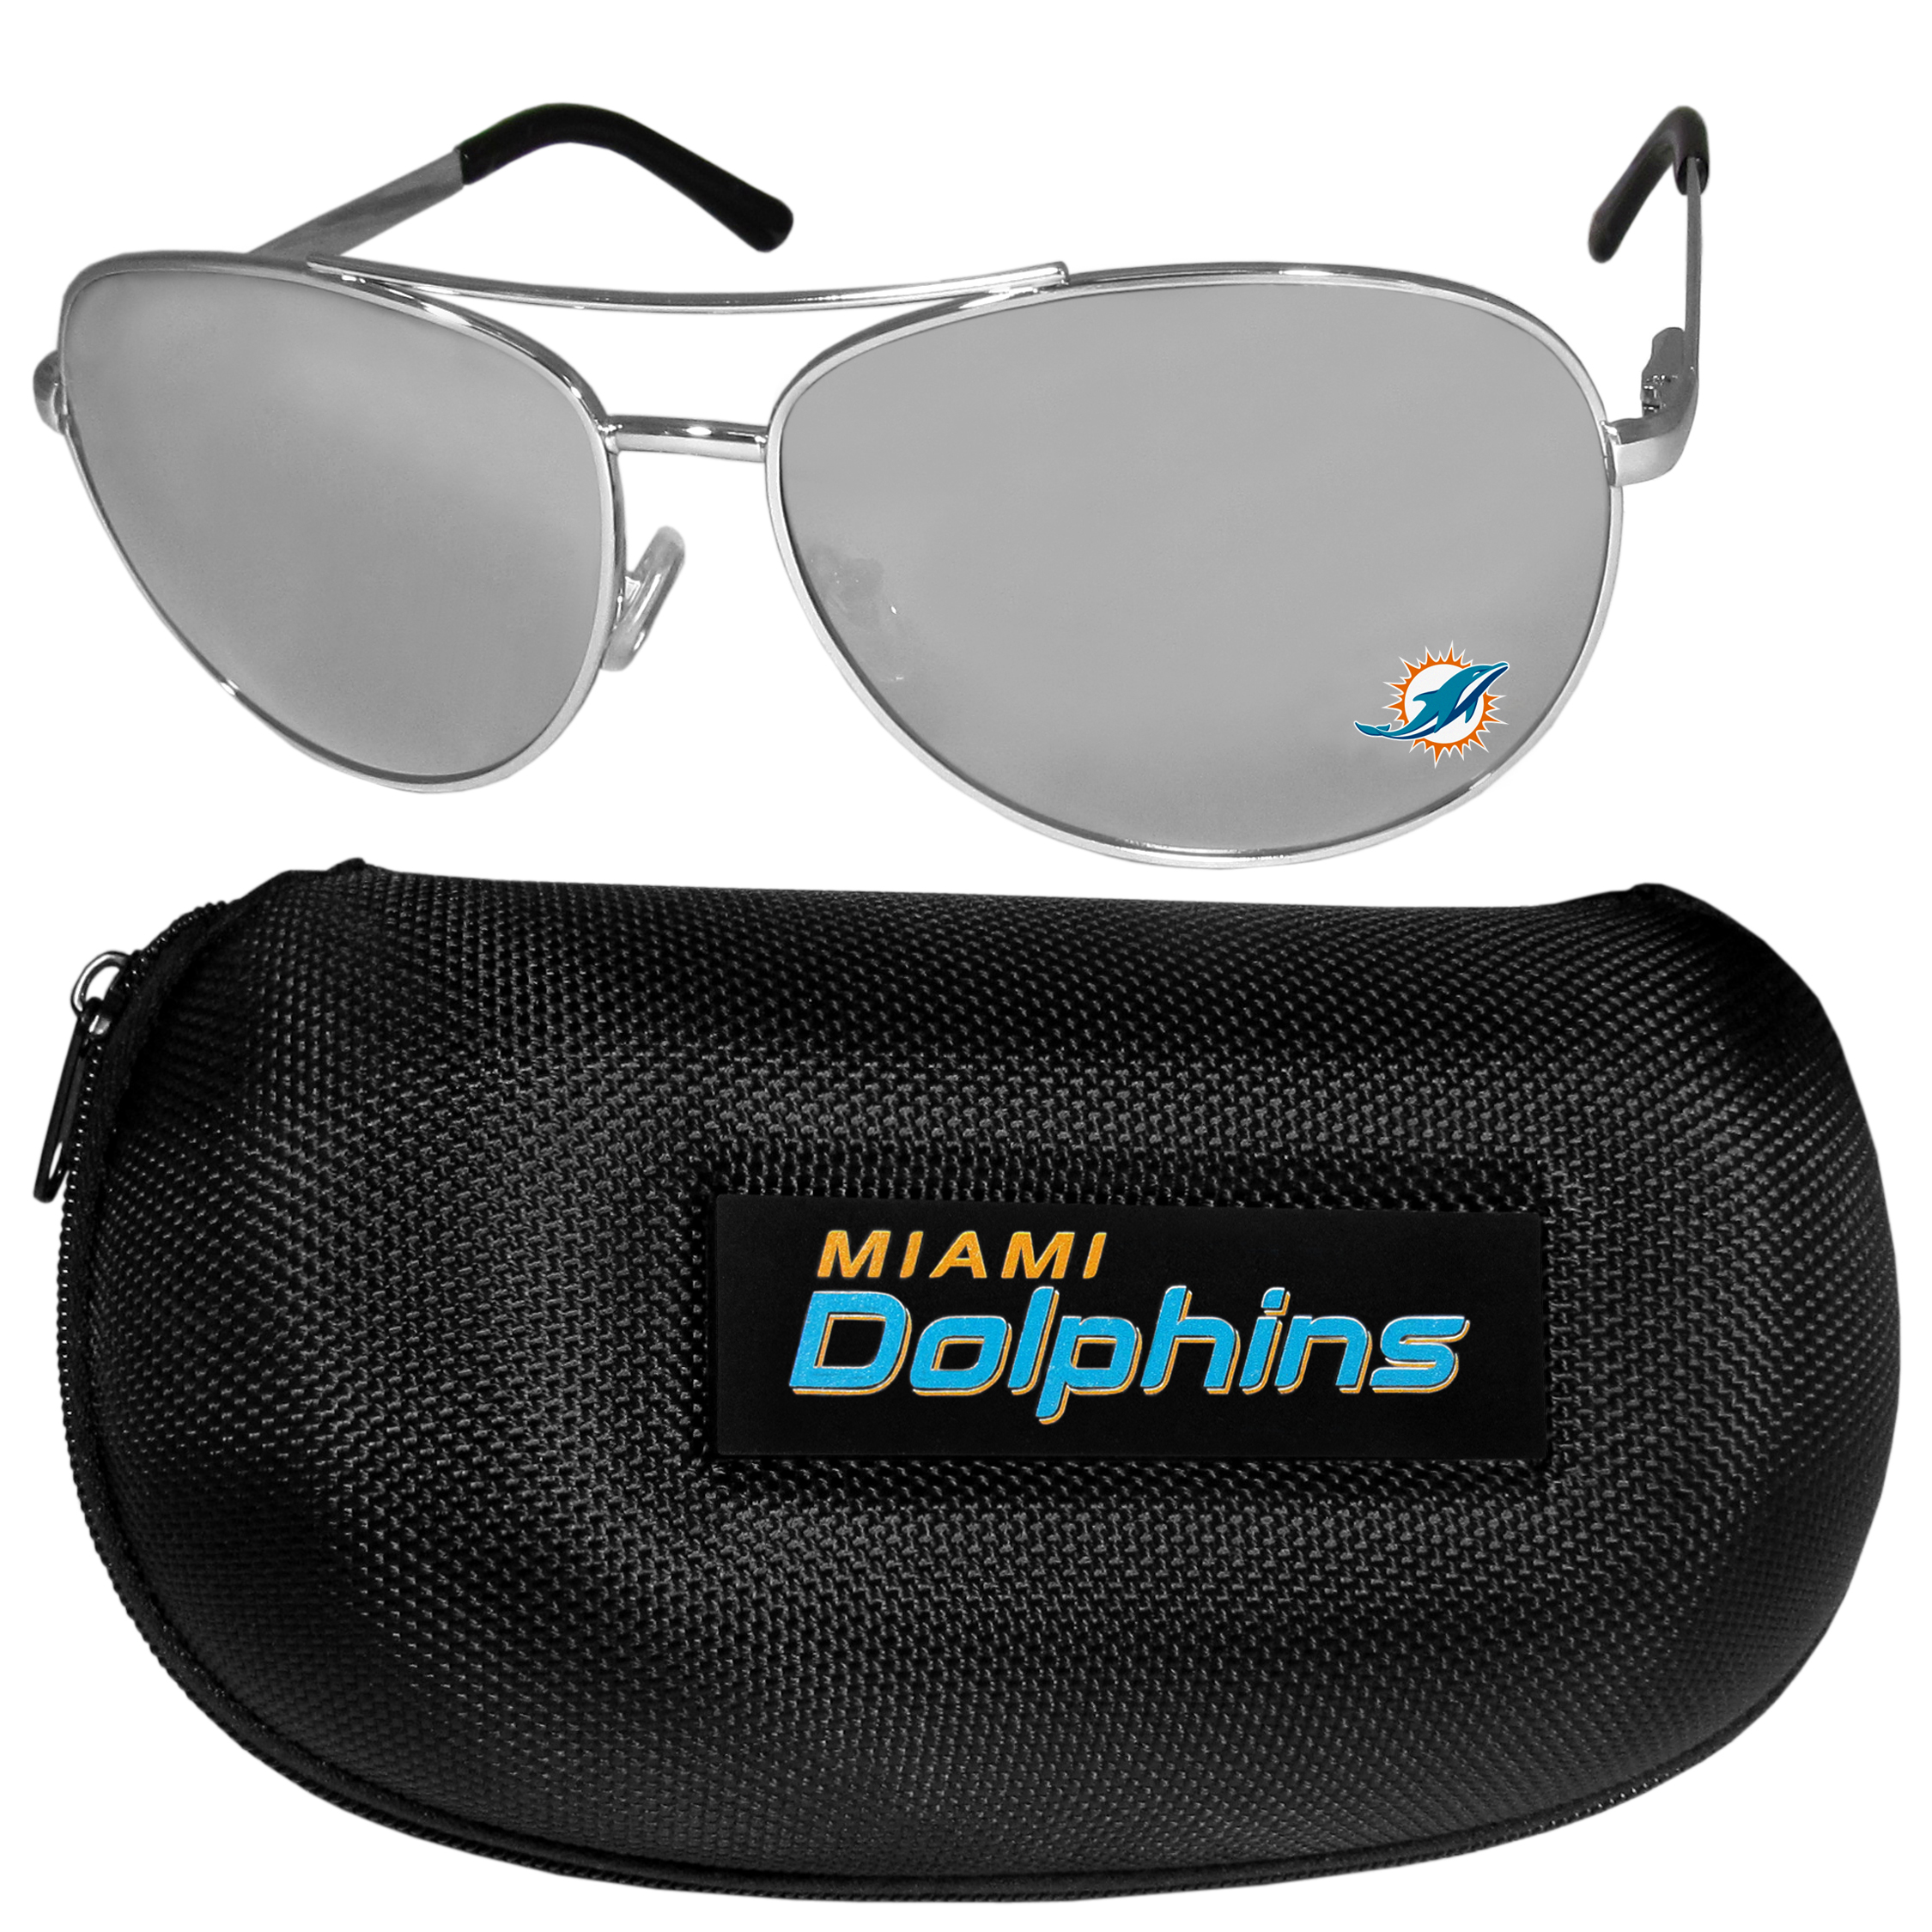 Miami Dolphins Aviator Sunglasses and Zippered Carrying Case - Aviator sunglasses are truly an iconic retro fashion statement that never goes out-of-style. Our Miami Dolphins  aviator sunglasses pair this classic look with your love of the game. The iridium coated lenses reduce glare while driving, boating, golfing and their 100% UVA/UVB rating provides you with the maximum UV protection for all your outdoor activities. A millennial favorite, these affordable designer frames are the perfect eyewear accessory for a sports fan that is looking for high-quality at an affordable price. The durable, flex hinged frames are tough enough for hiking and camping or if you prefer sun bathing by the pool or on the beach these shades will really stand the test of time. The sunglasses come with a hard shell zippered case which has a large team logo on the lid that will make even the most die-hard fan proud!